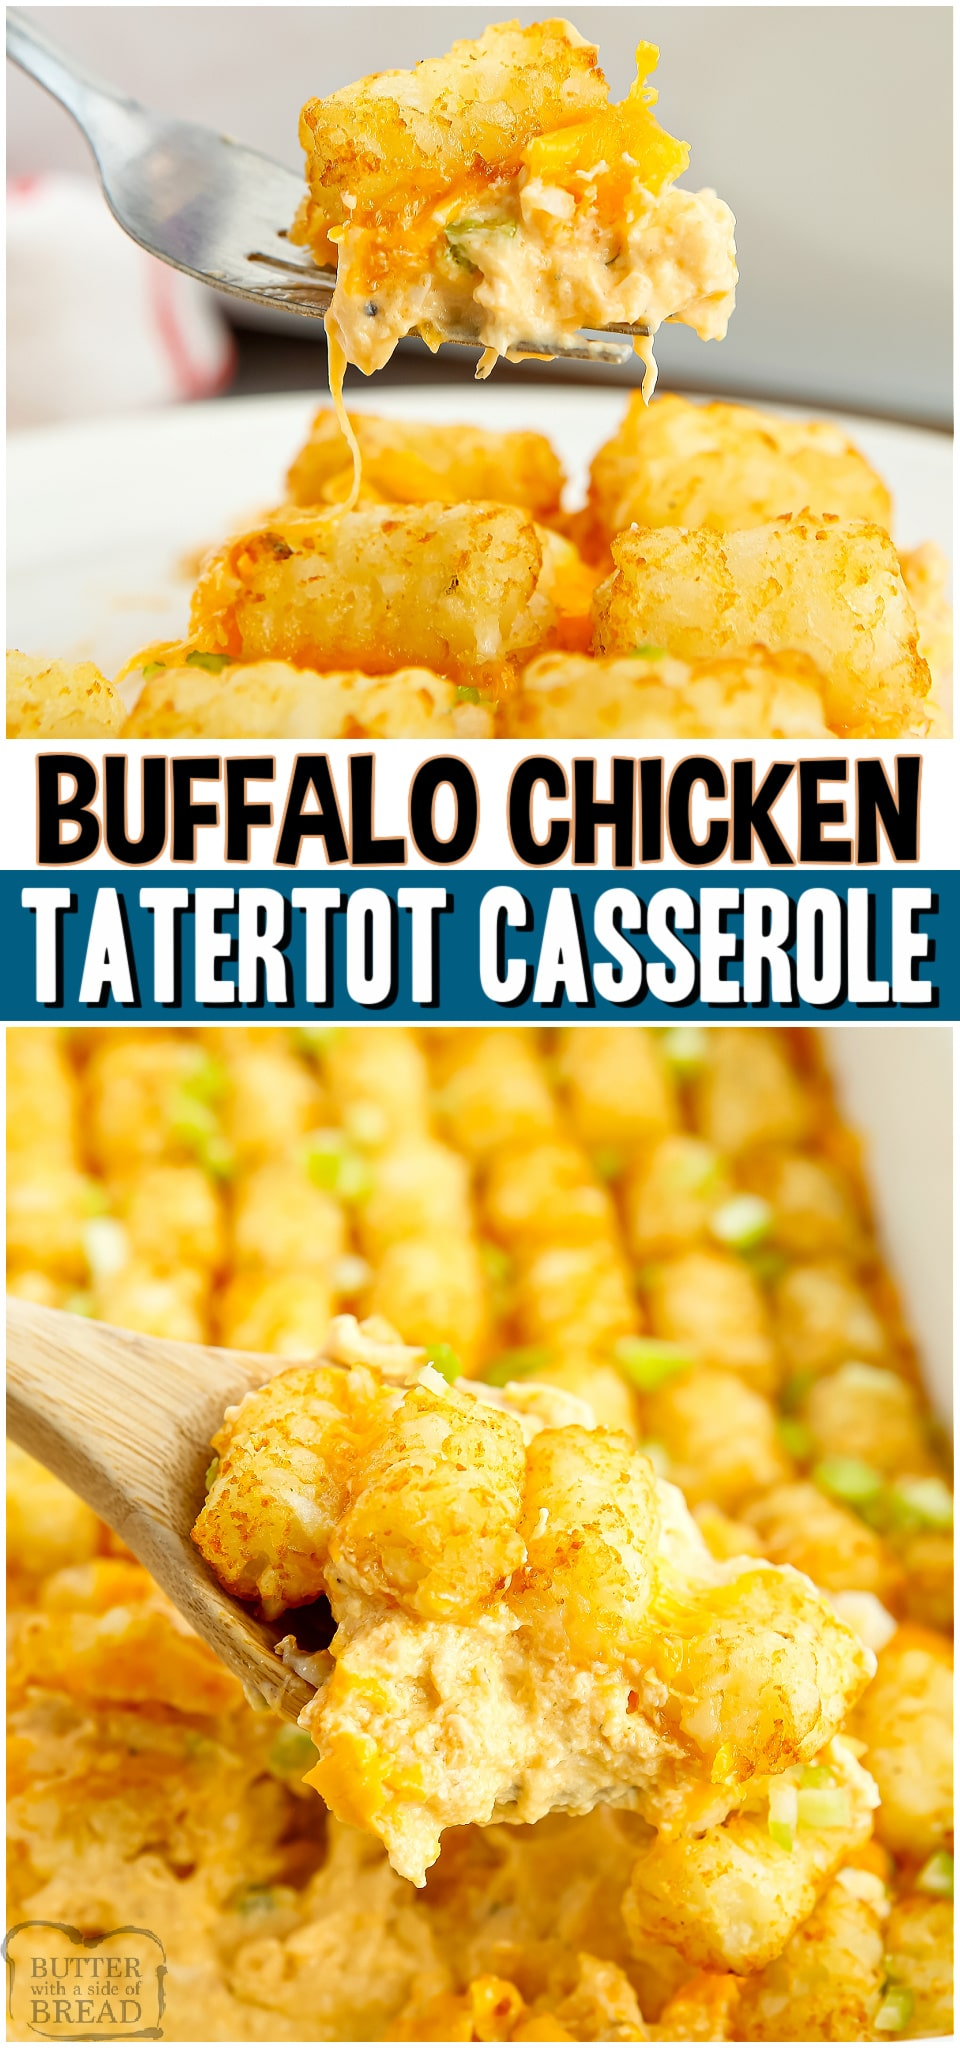 We took our favorite Tater Tot Casserole and added a Buffalo Chicken twist! Made with buffalo wing sauce, chicken, cheese & tater tots, this dinner's packed with creamy, cheesy flavor! #chicken #tatertot #casserole #buffalo #dinner #easyrecipe from BUTTER WITH A SIDE OF BREAD